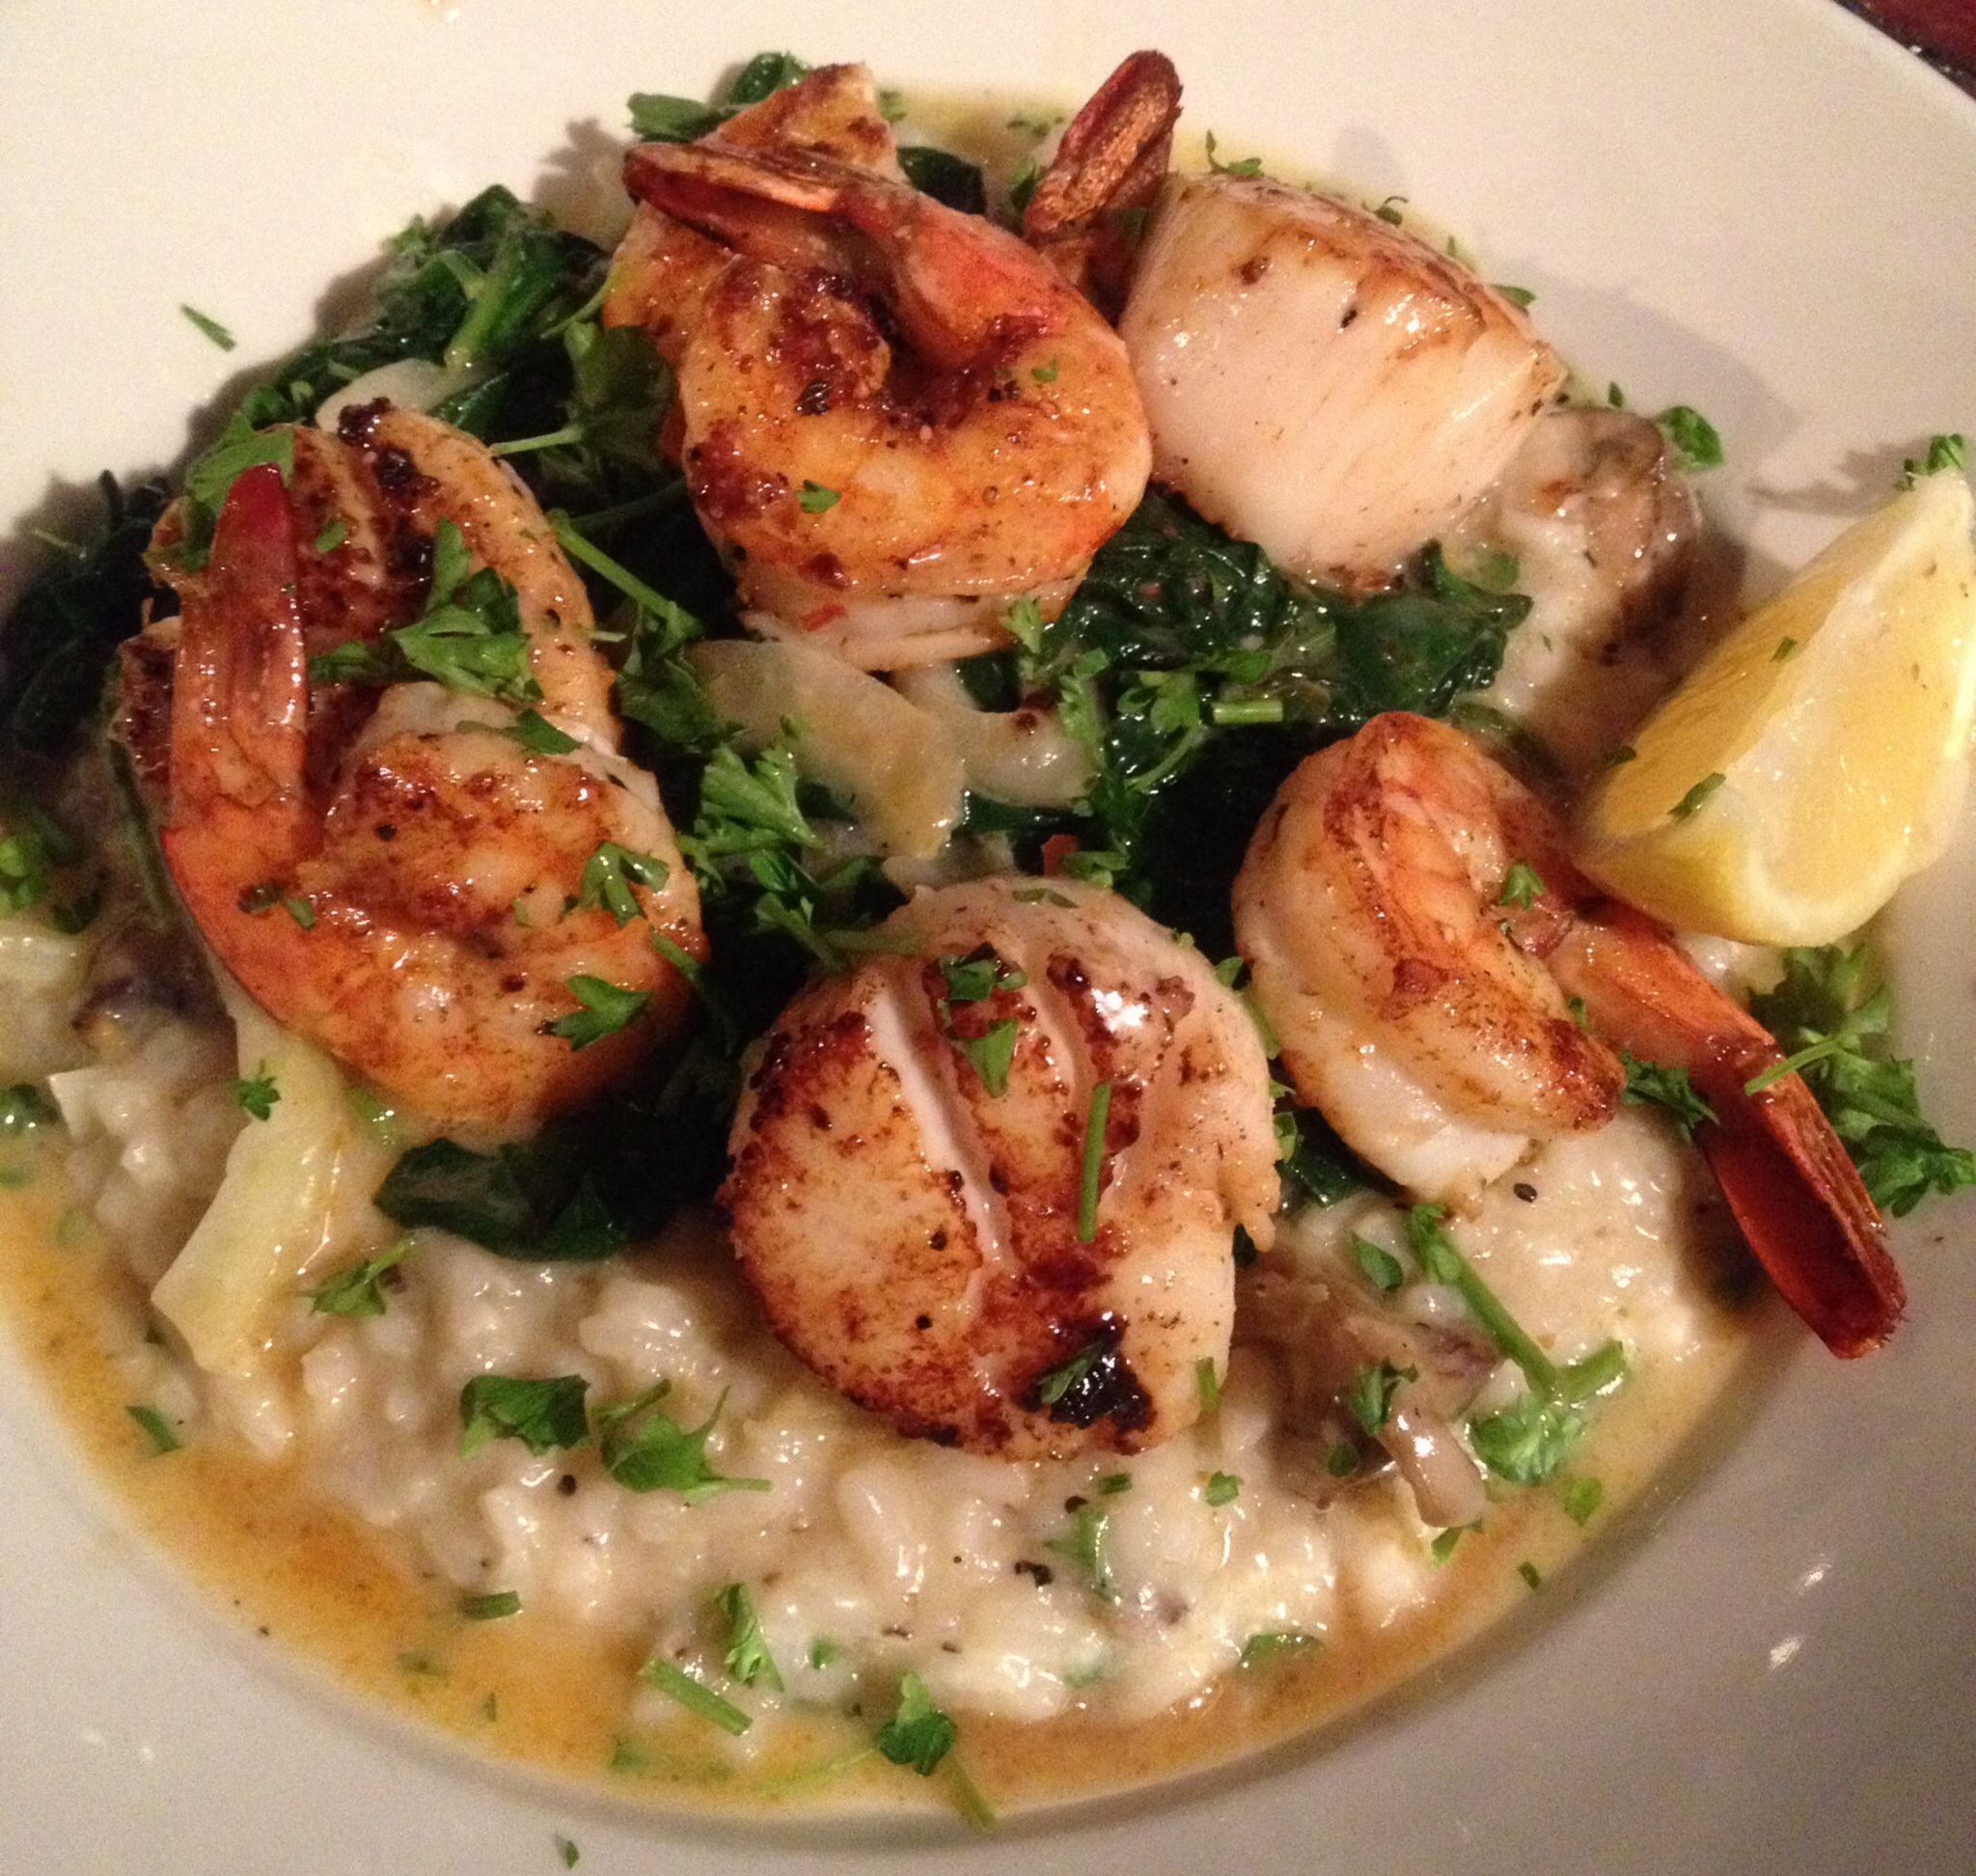 Jumbo Sea Scallops & Shrimp With Mushroom Risotto, Spinach